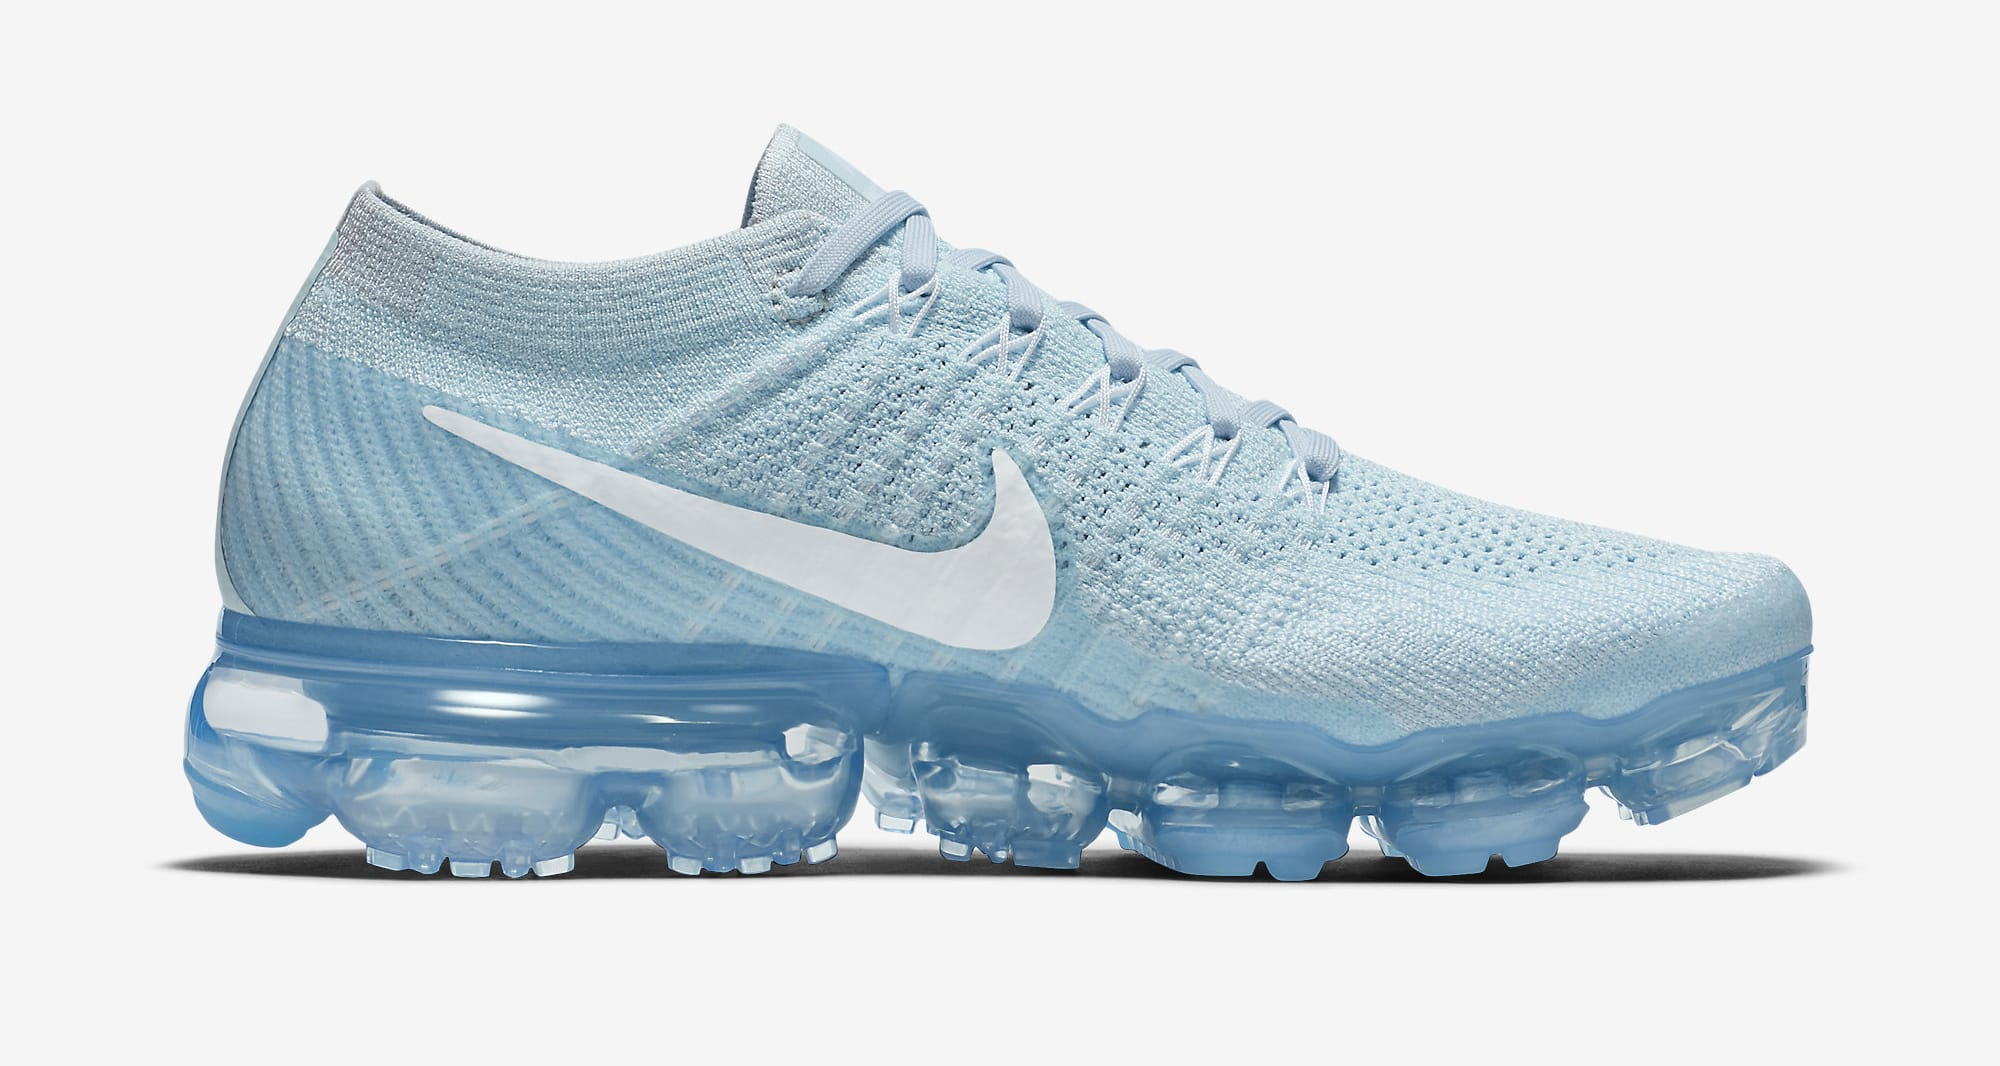 aa72d755009ce Buy Nike Cheap Air Vapormax Flyknit Running Shoes Sale Online 2018